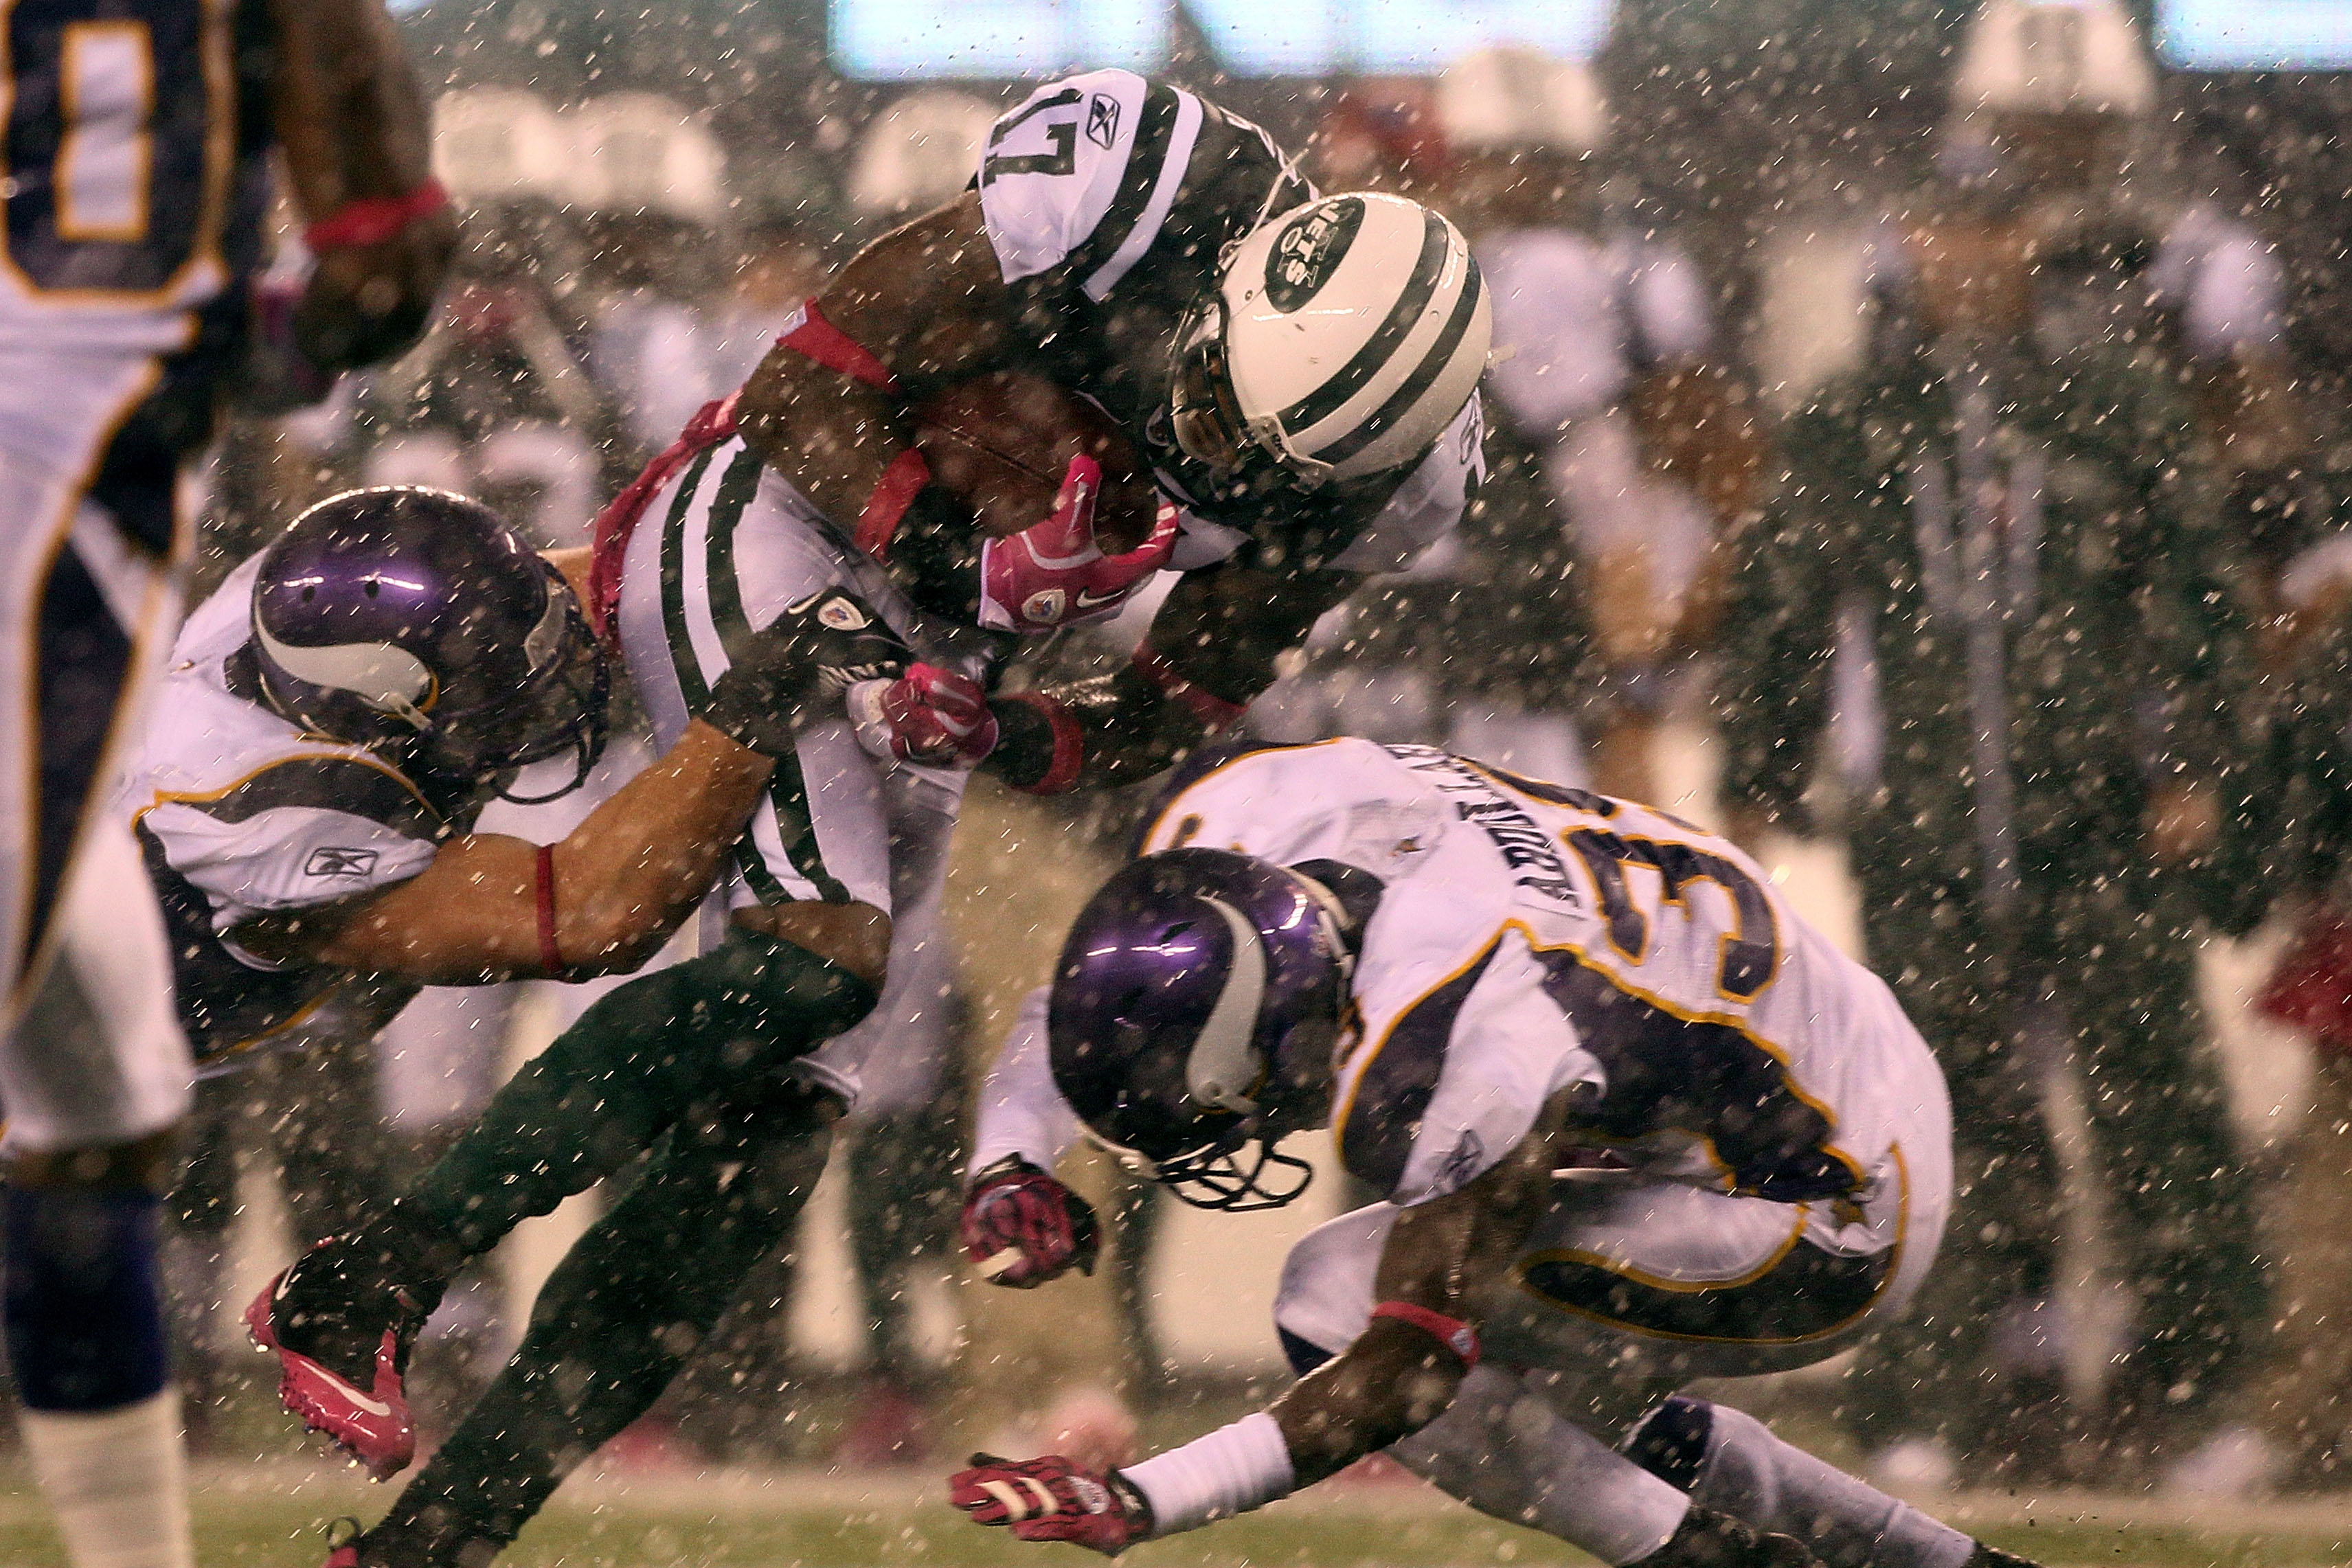 EAST RUTHERFORD, NJ - OCTOBER 11:  Braylon Edwards #17 of the New York Jets runs for yards after the catch in the second quarter against Husain Abdullah #39 of the Minnesota Vikings at New Meadowlands Stadium on October 11, 2010 in East Rutherford, New Je